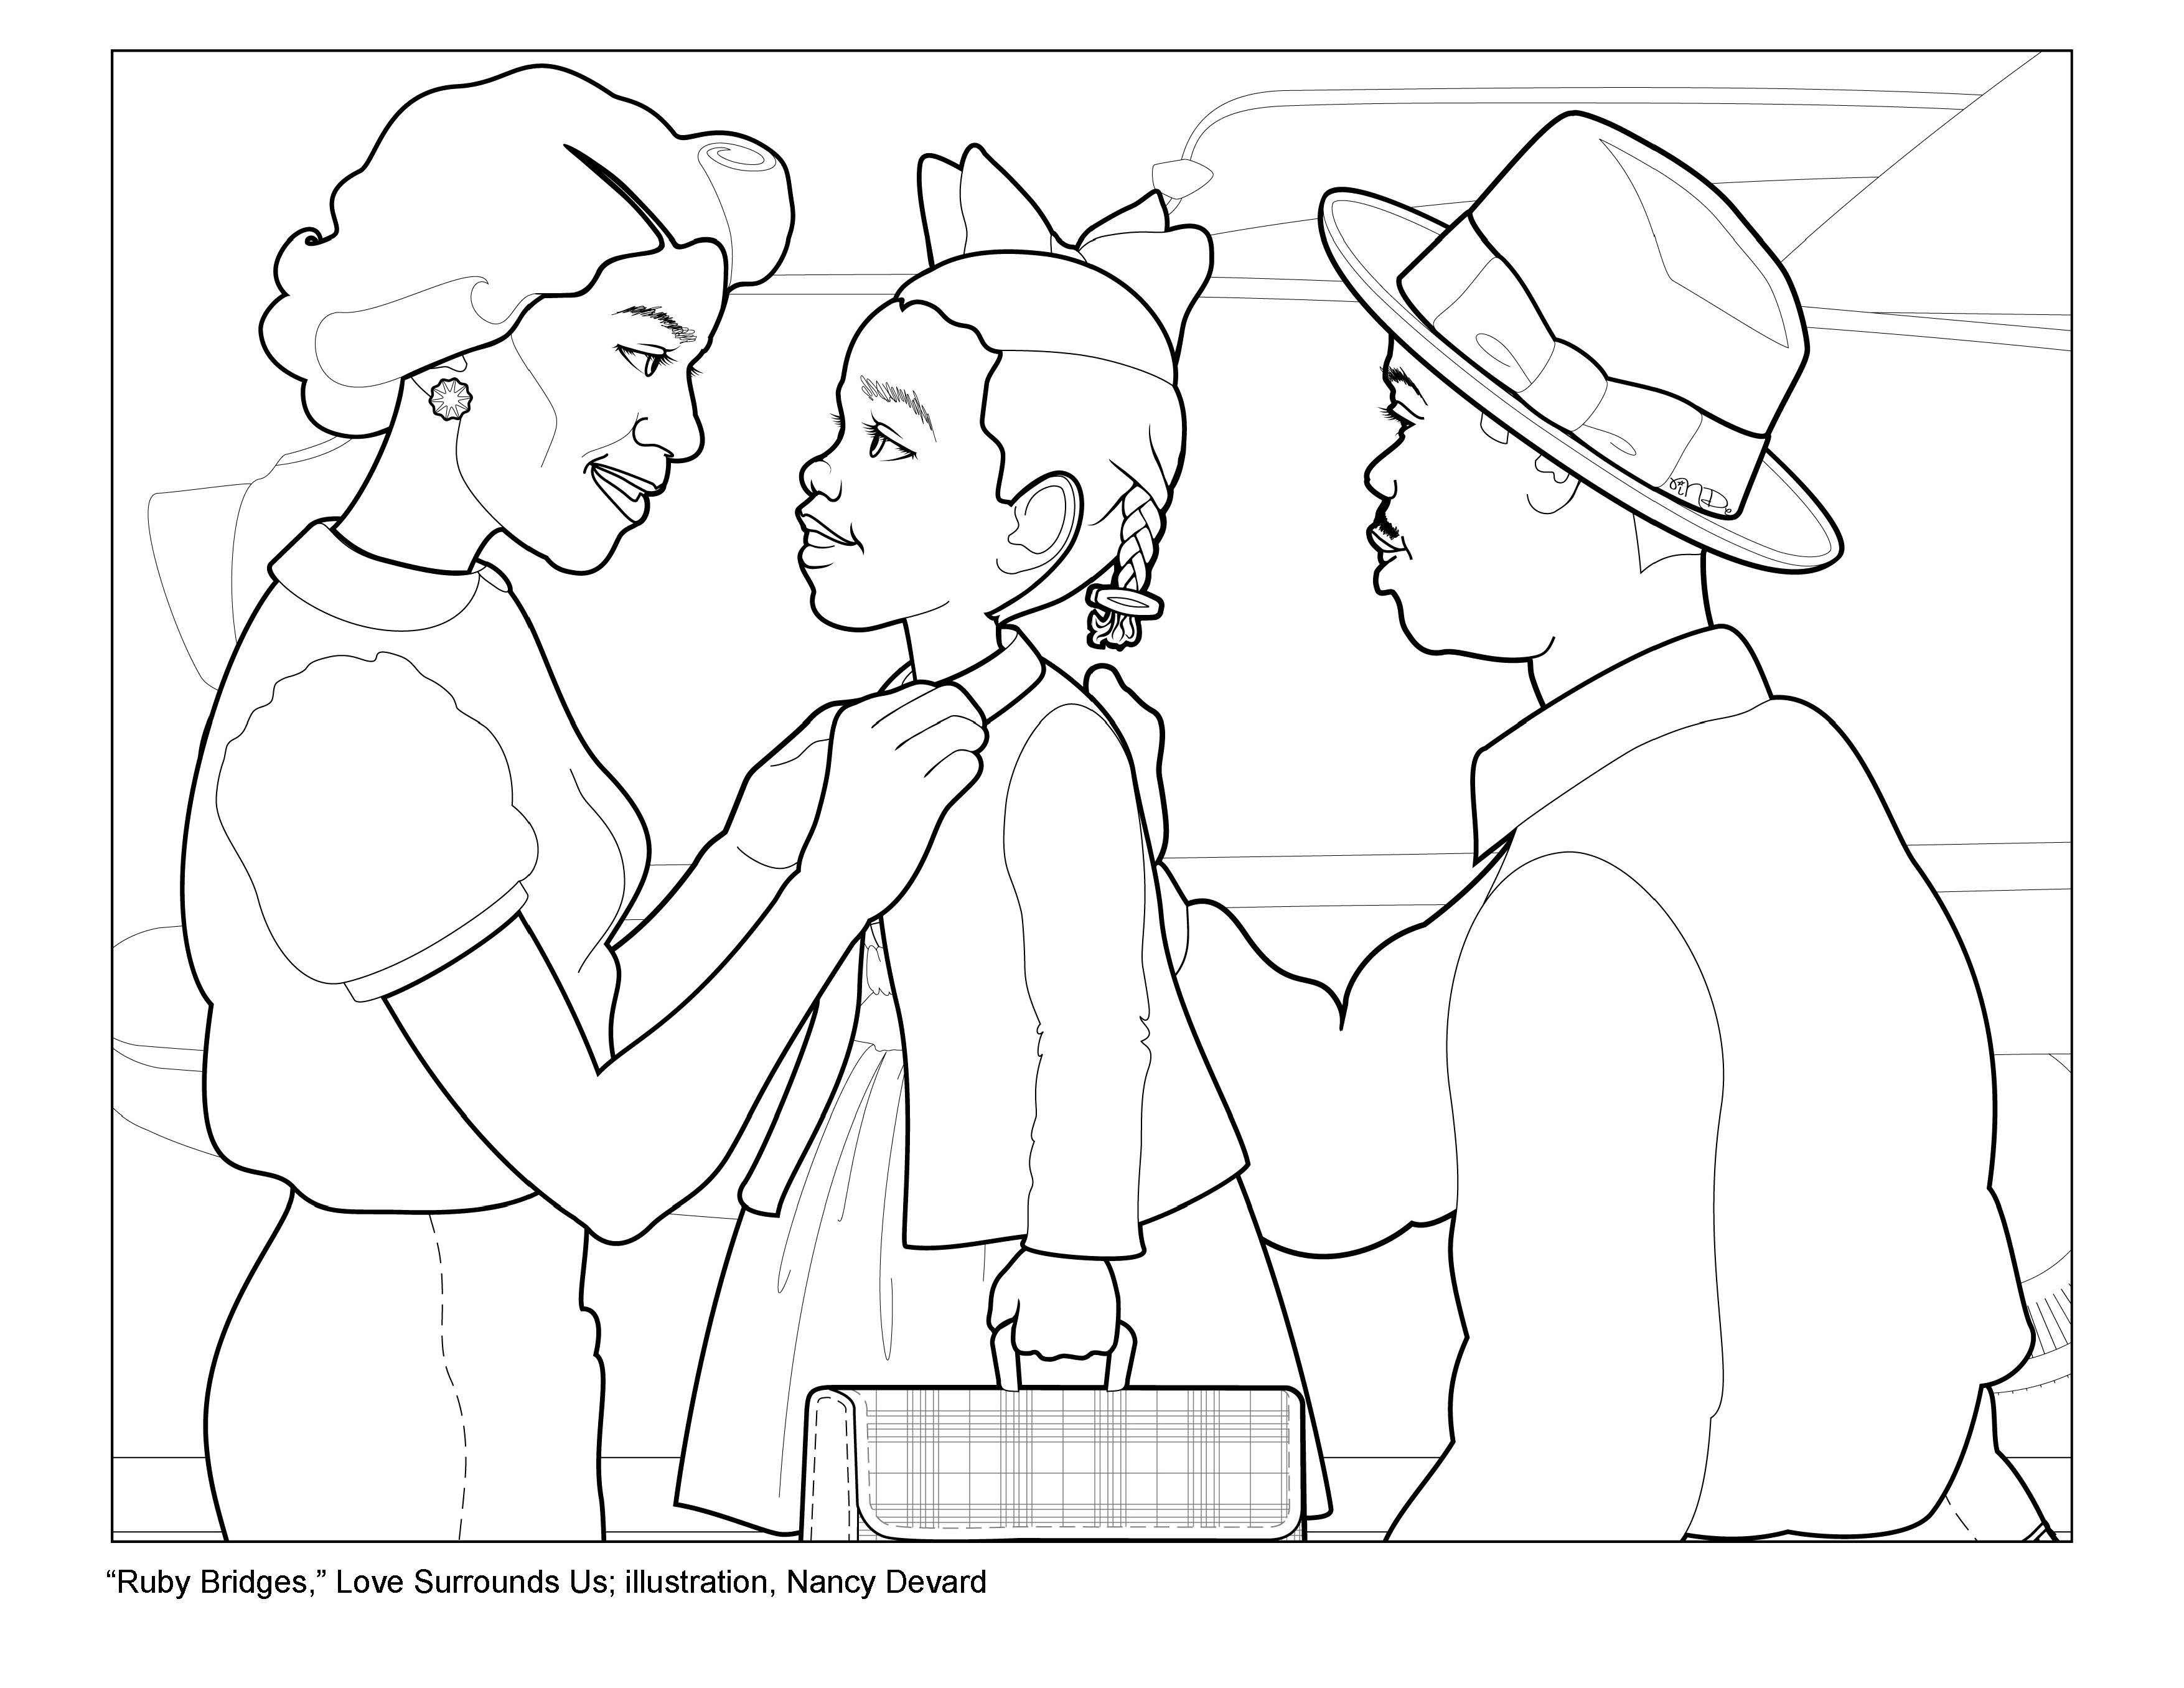 Best ideas about Free Coloring Pages Of Ruby Bridges . Save or Pin Ruby Bridges Surrounded by Love Now.